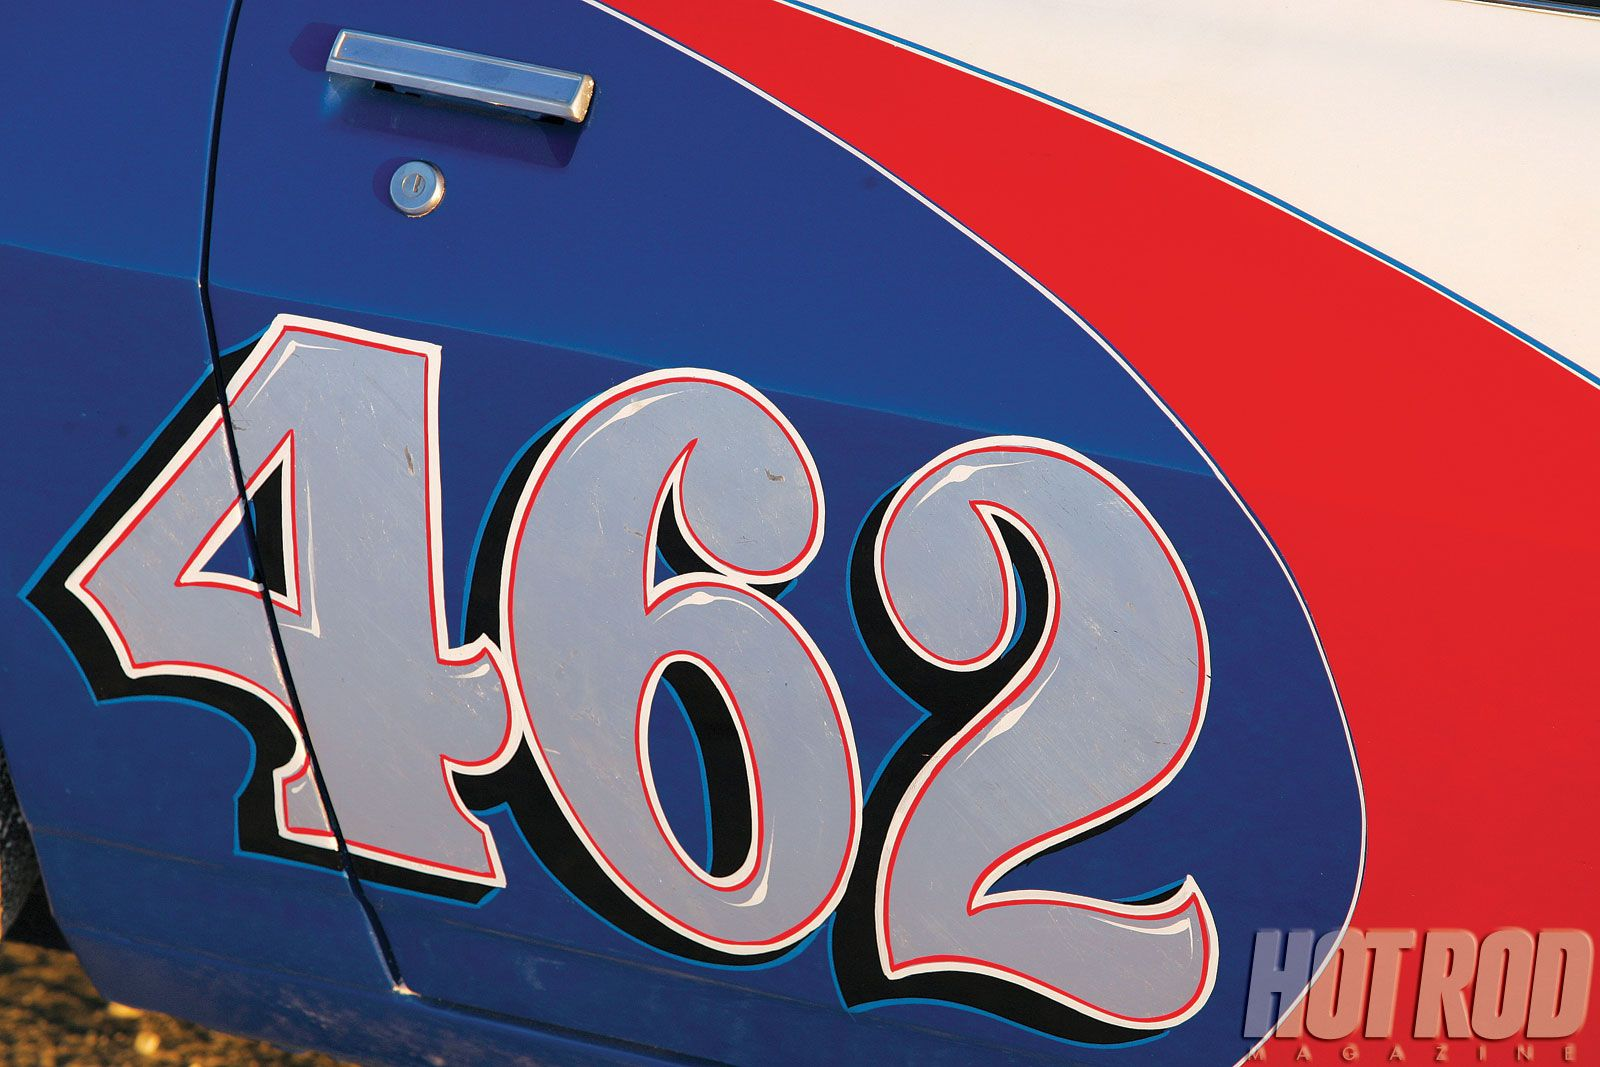 vintage race car hand lettering Google Search Hand